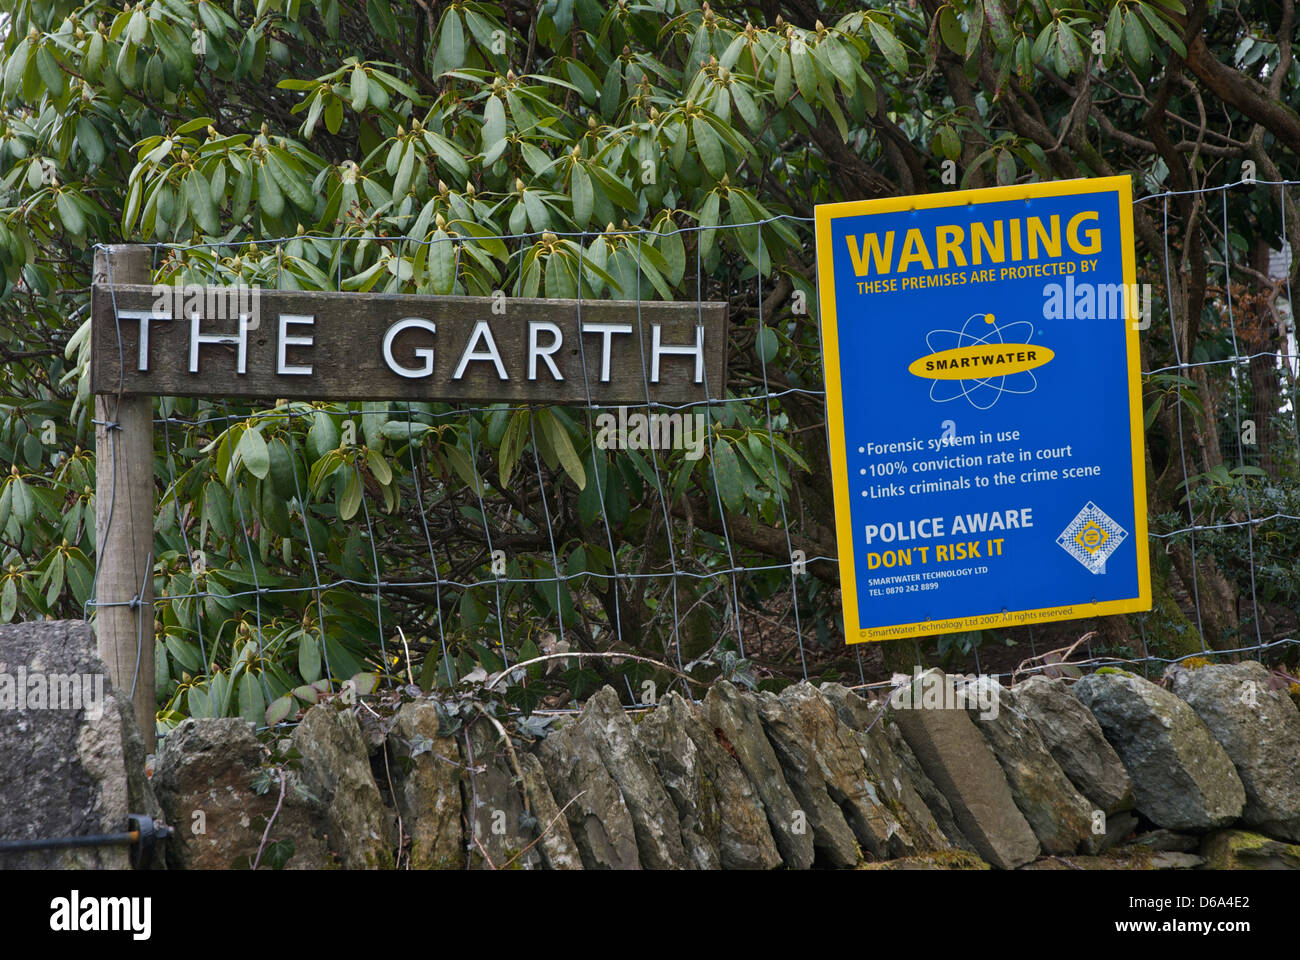 House with sign warning that the contents are protected by Smartwater technology, Bowness, South Lakeland, Cumbria, - Stock Image